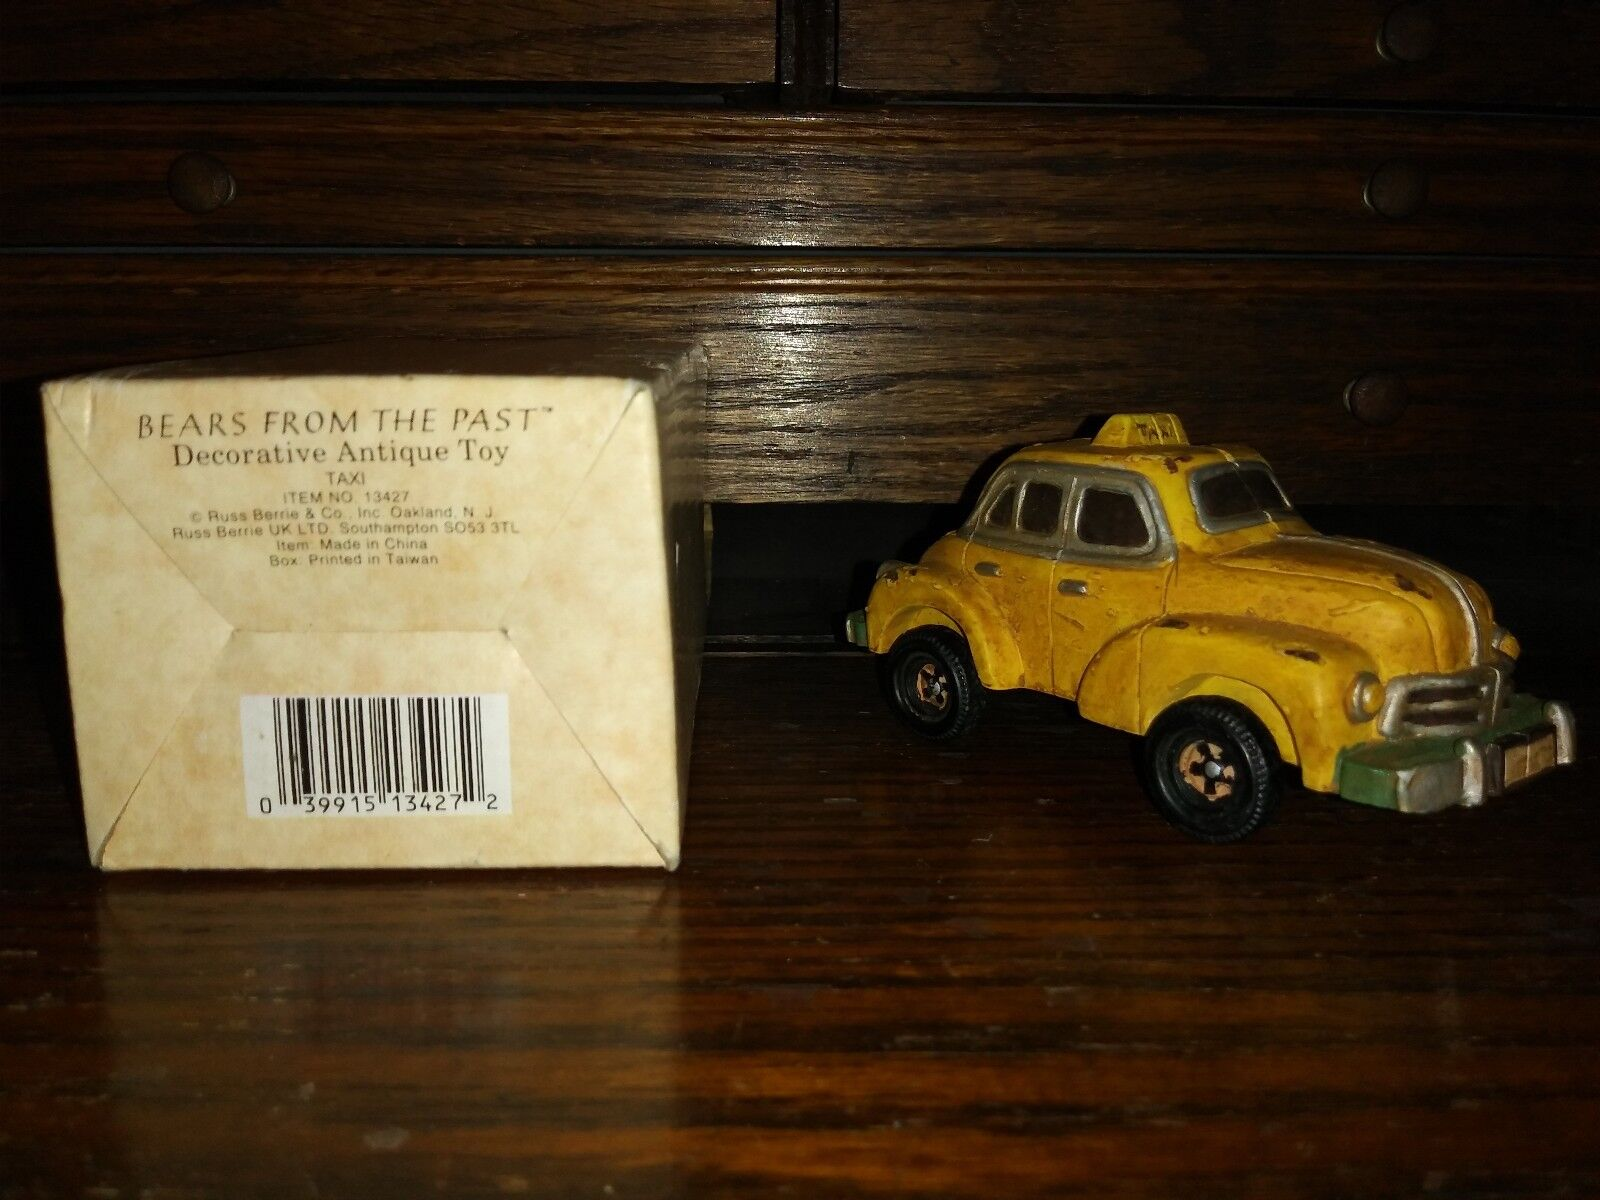 RARE Vtg Russ Russ Russ BEARS FROM THE PAST No. 13427 Decorative Antique Toy TAXI NIB a09a92